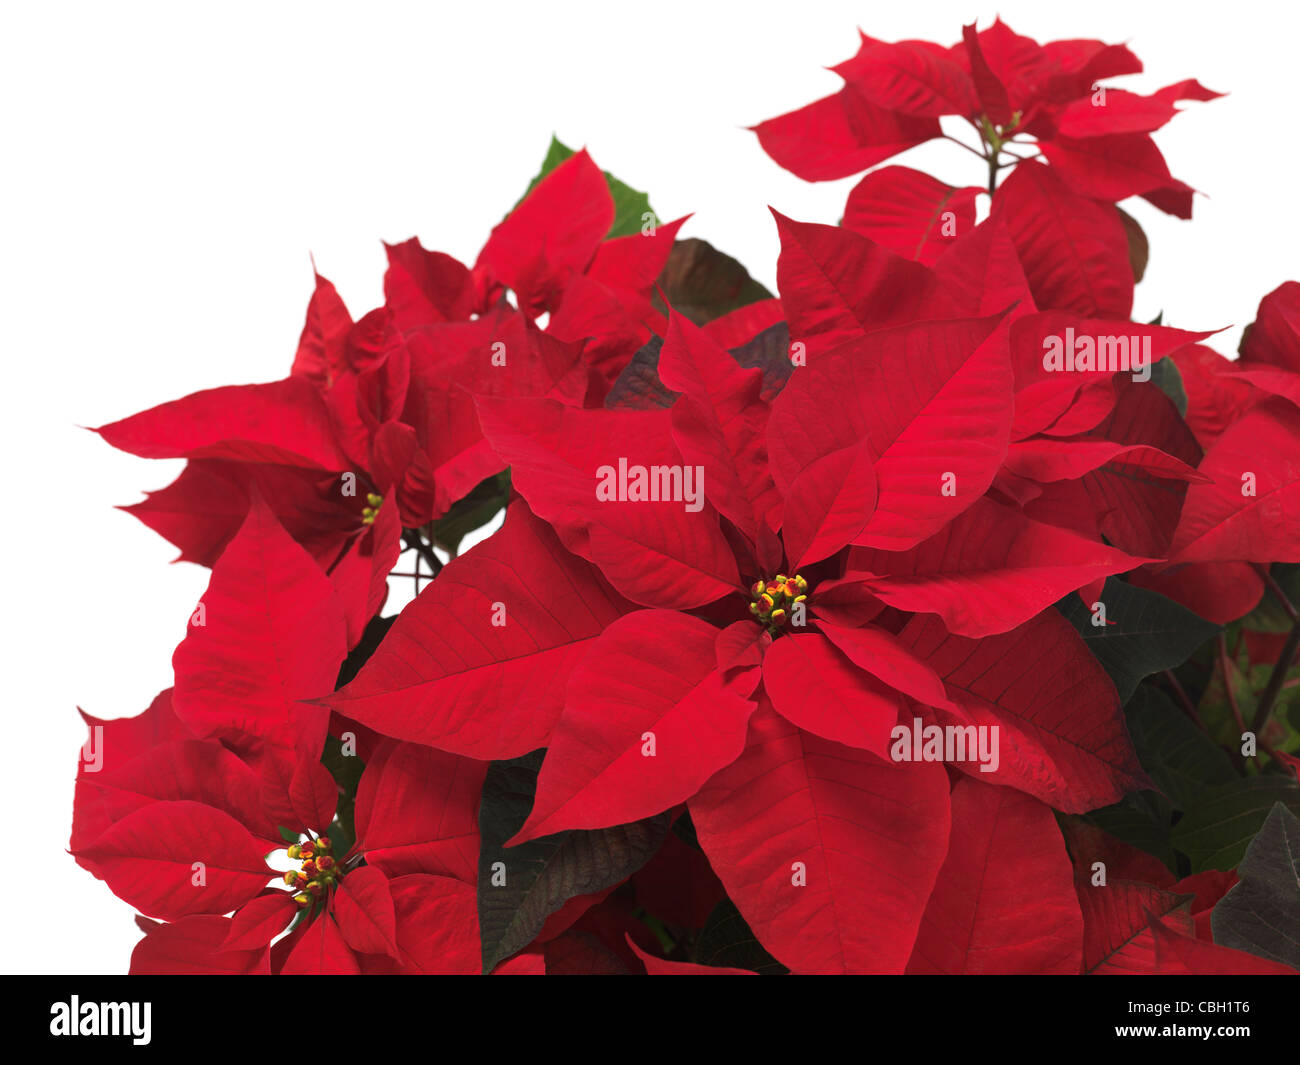 Poinsettia - red Christmas flower leaves isolated on white background - Stock Image